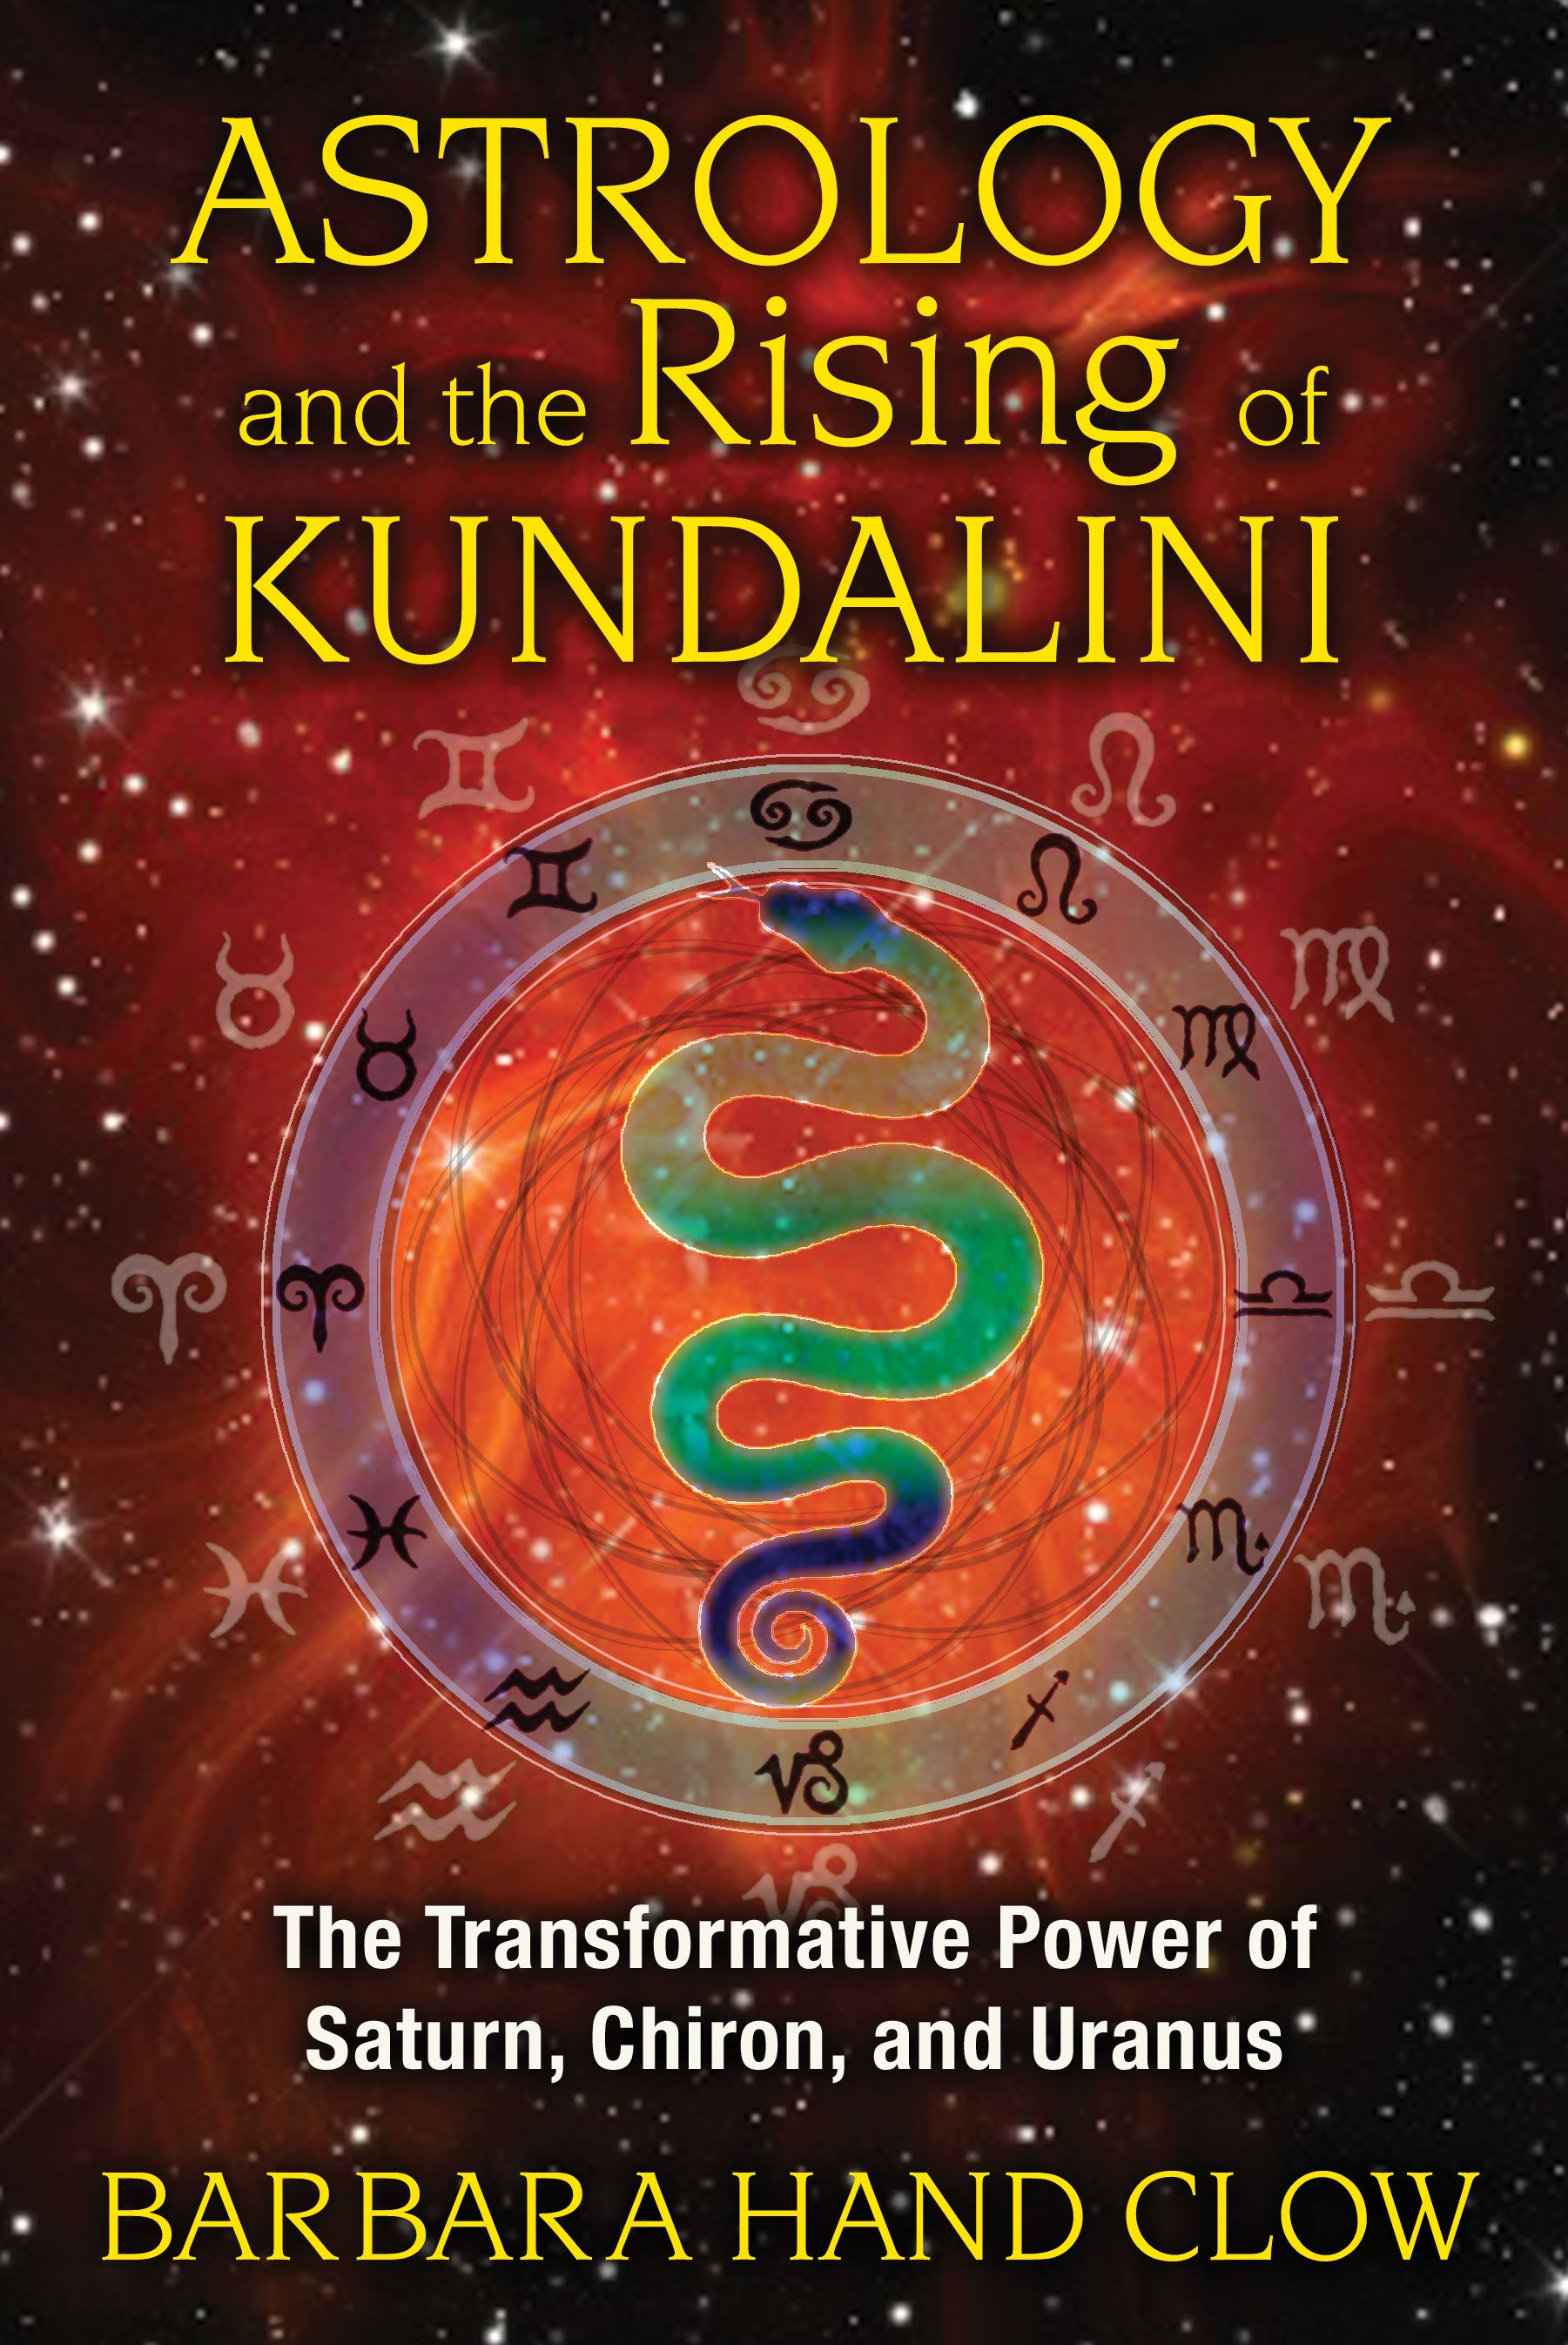 Astrology and the rising of kundalini book by barbara hand clow astrology and the rising of kundalini 9781591431688 hr fandeluxe Choice Image